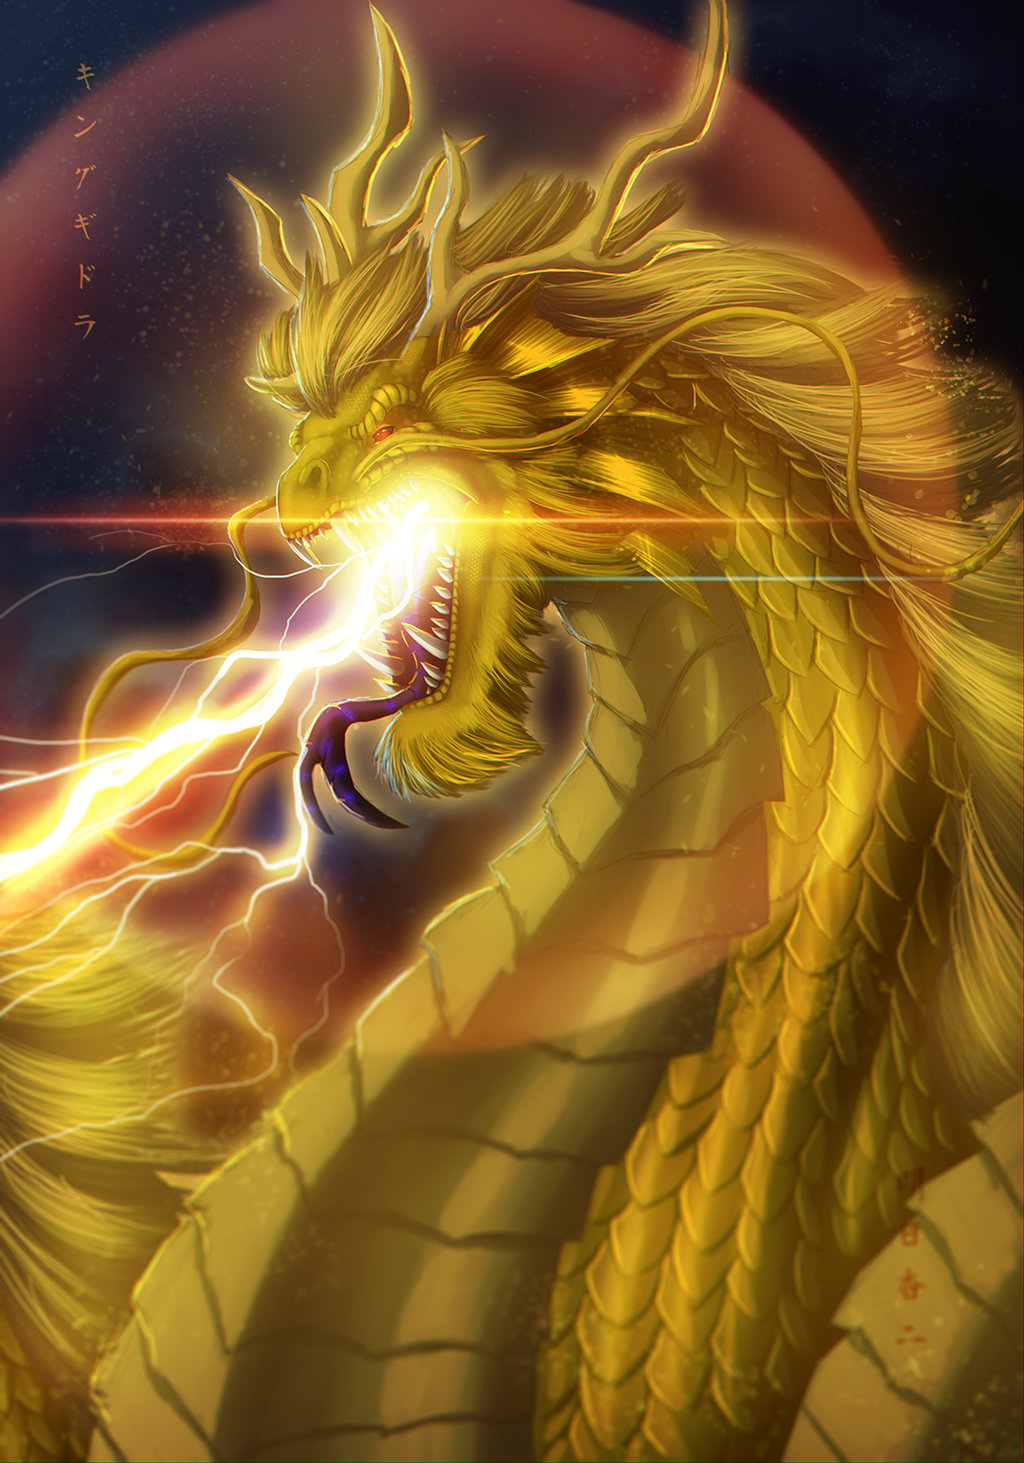 King Ghidorah Wallpaper King ghidorah redesign by 1024x1463